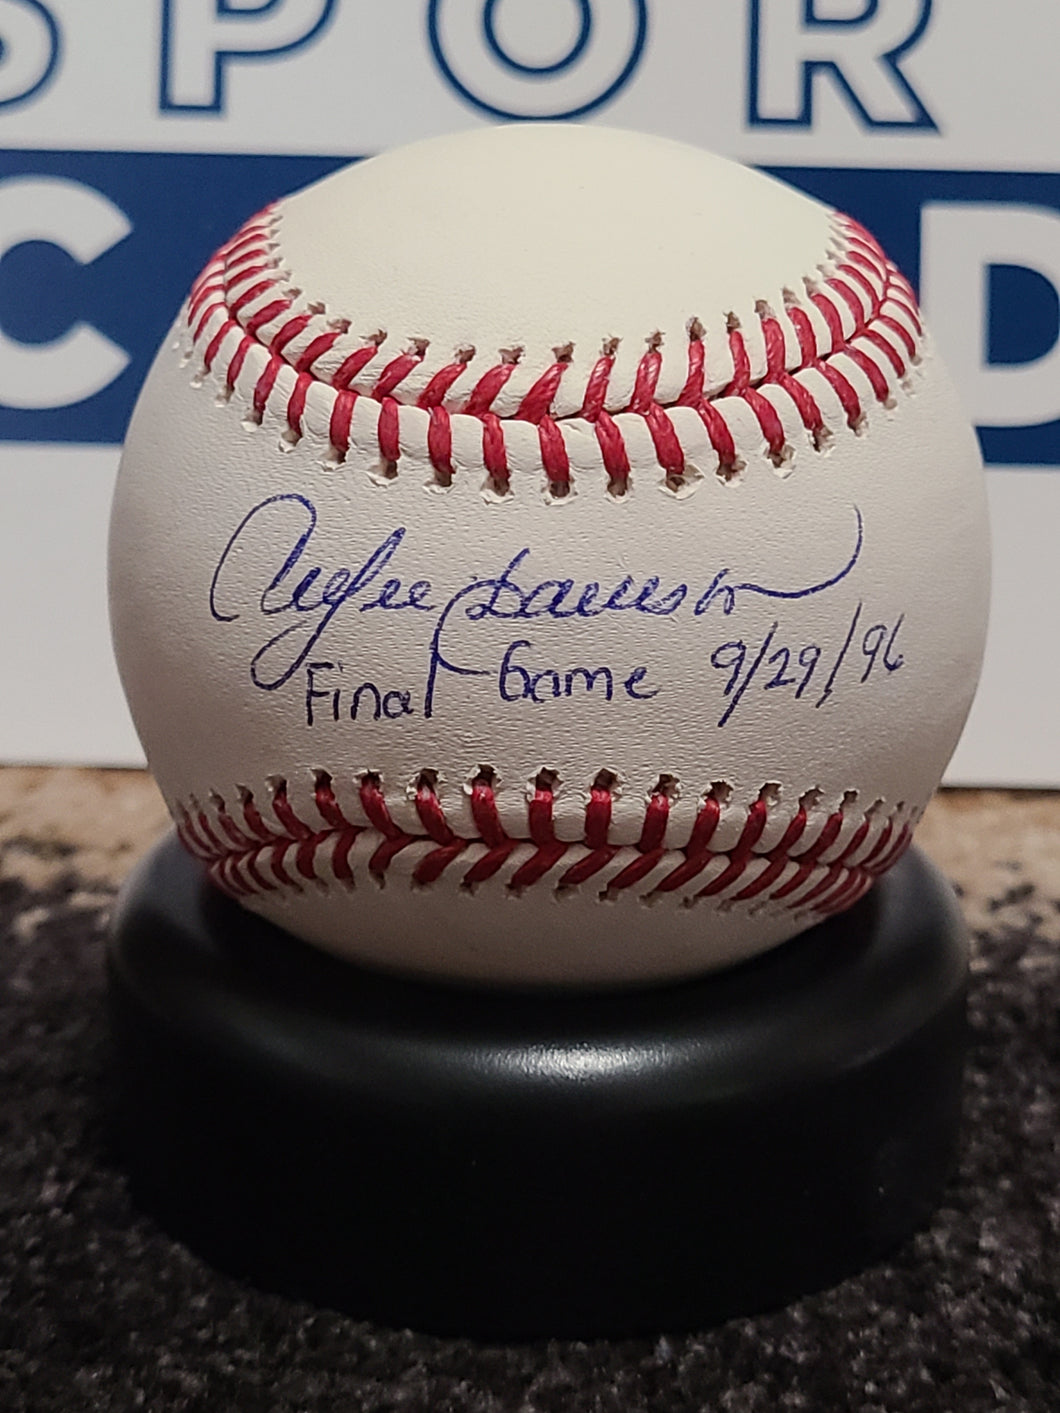 Andre Dawson Signed Baseball (TriStar COA) Serial #'d 1/6 w/ Final Game Inscription